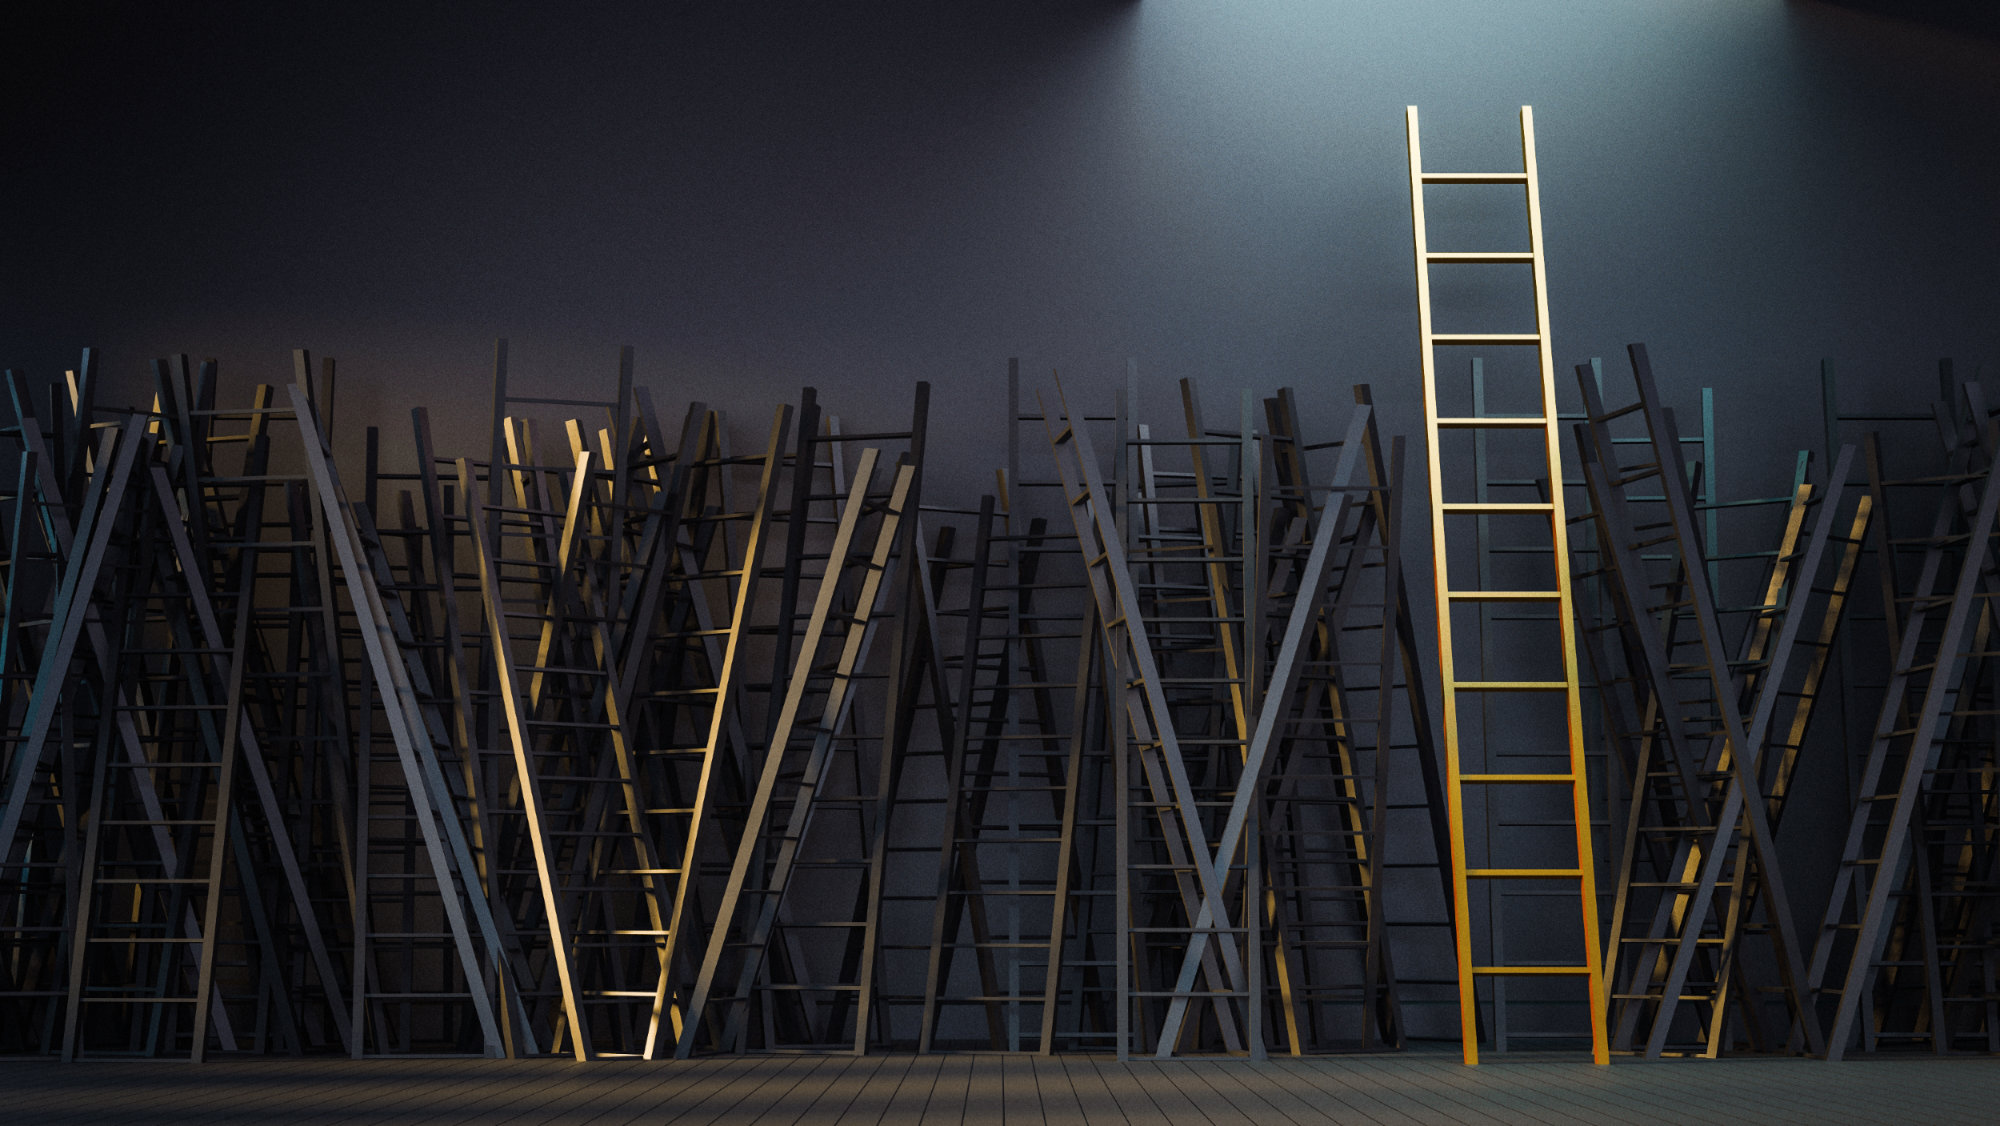 stacks of ladders against a black wall